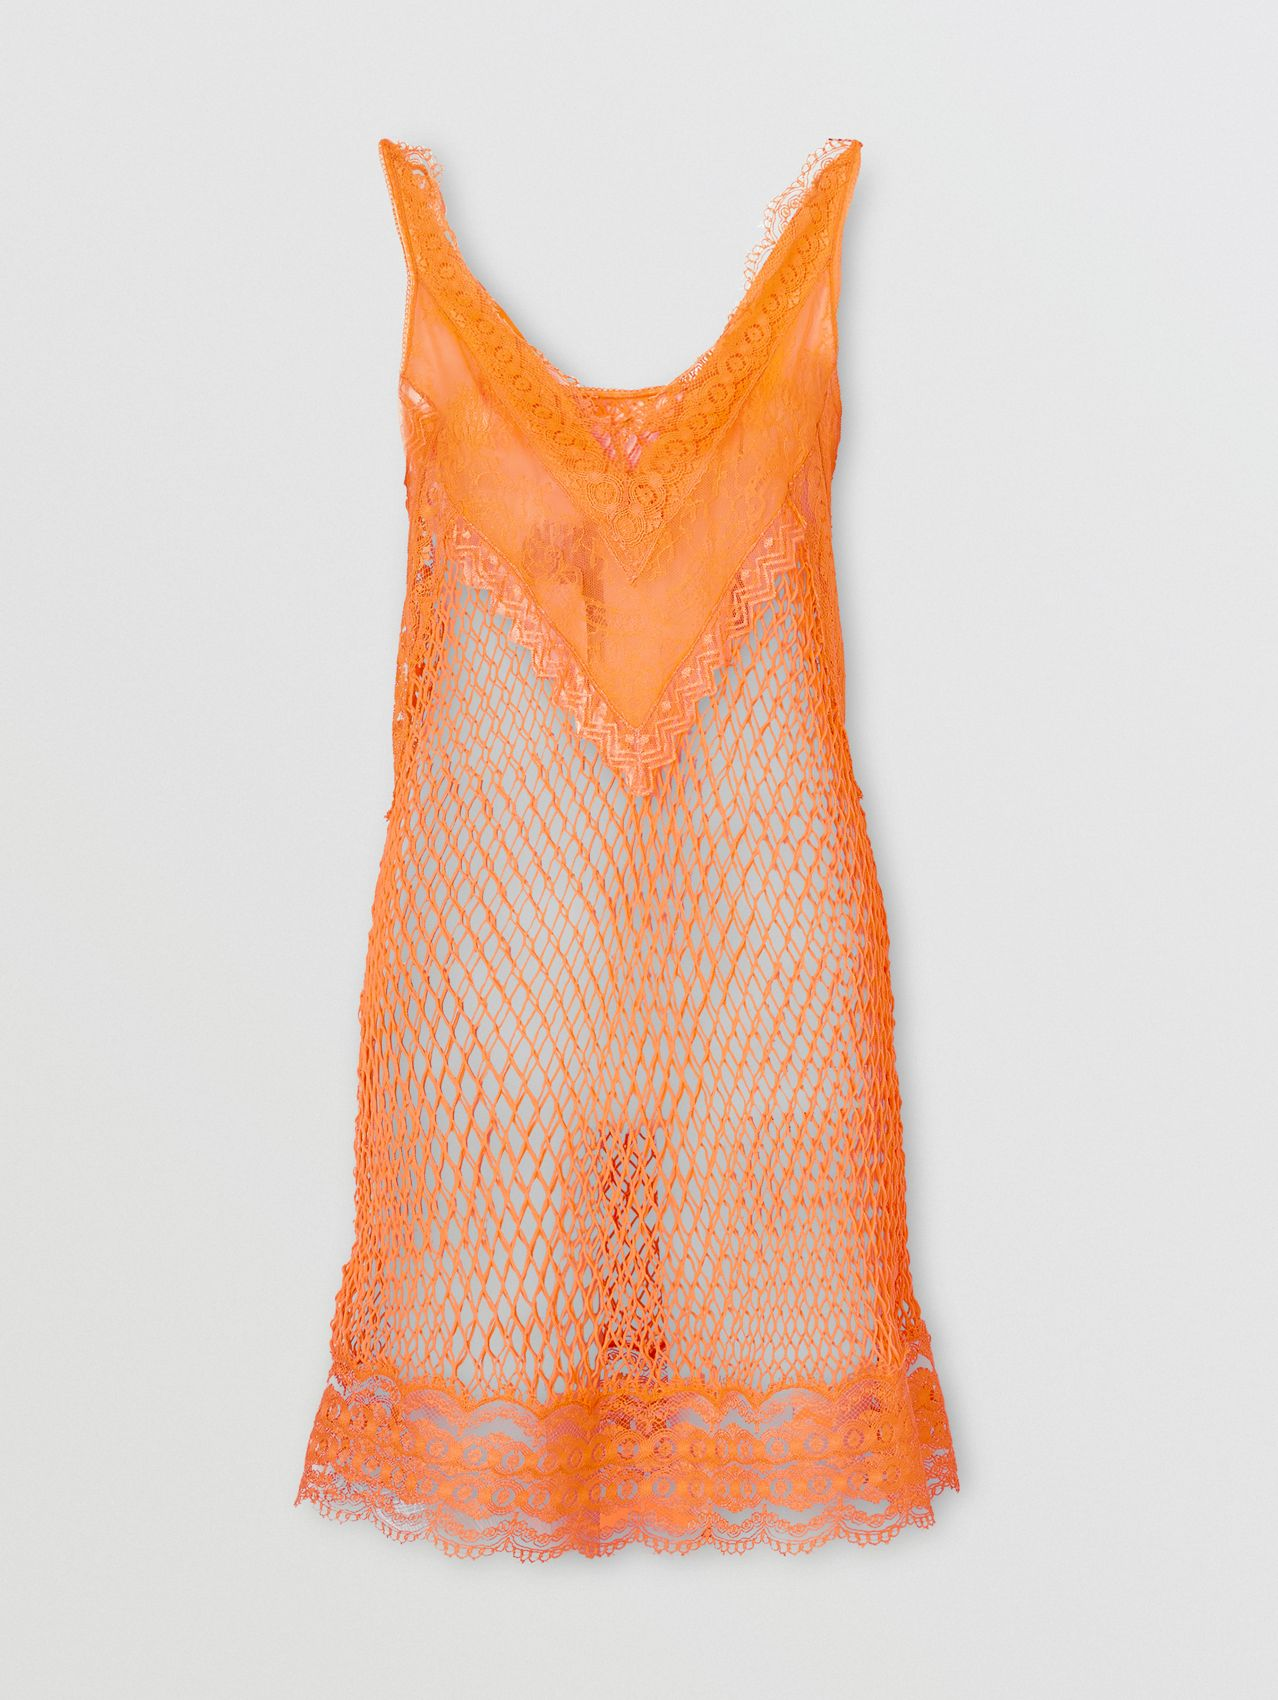 Fishnet and Lace Dress with Silk Slip in Amber Orange